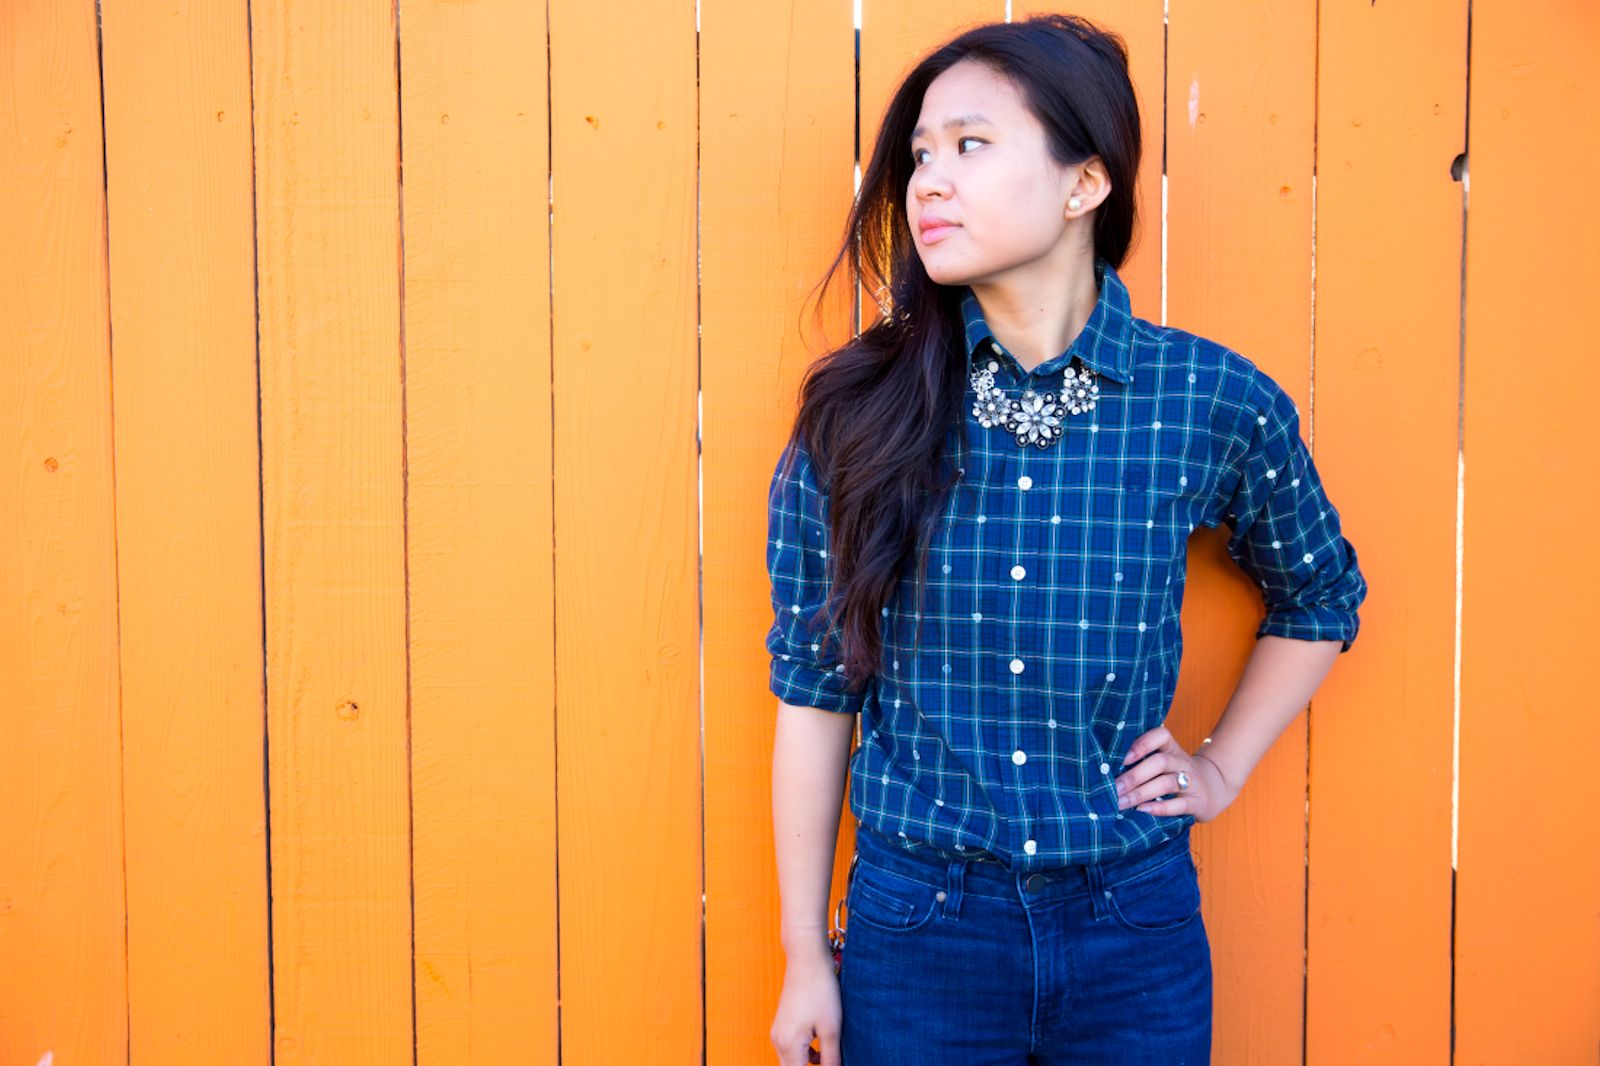 DIY: Polka Dot Plaid Shirt